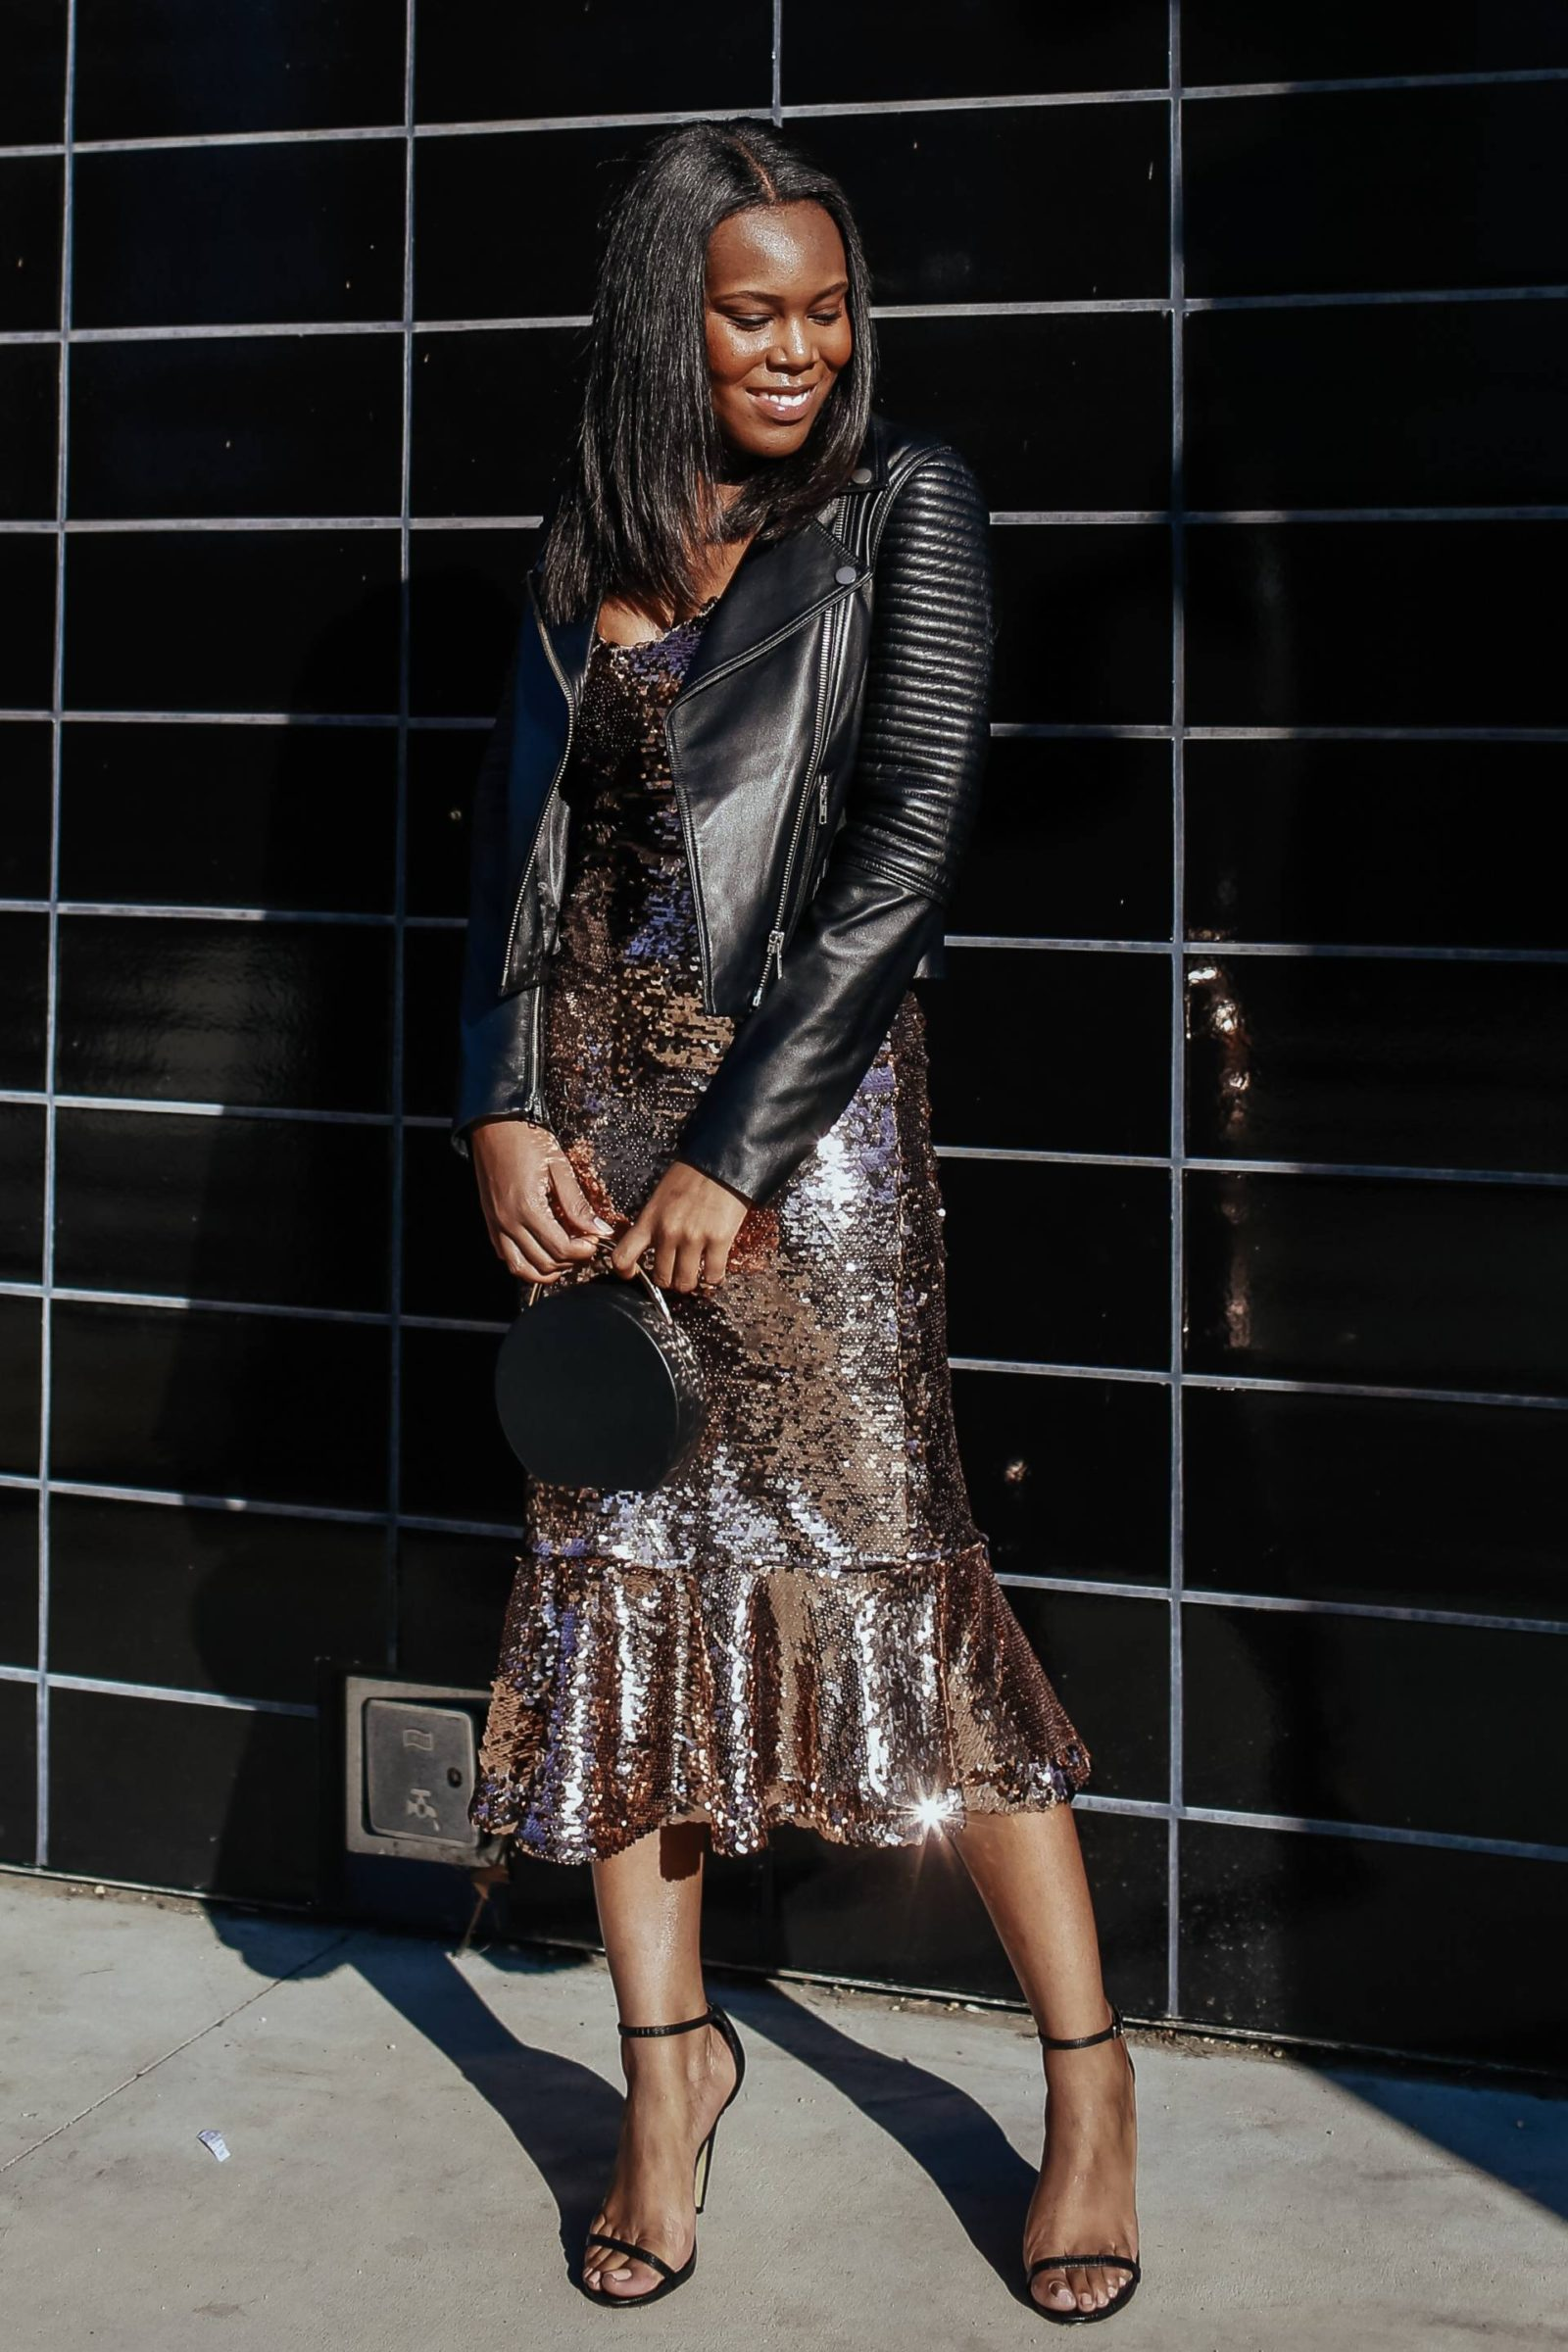 Sequin Dress with Leather Jacket -Le fab chic